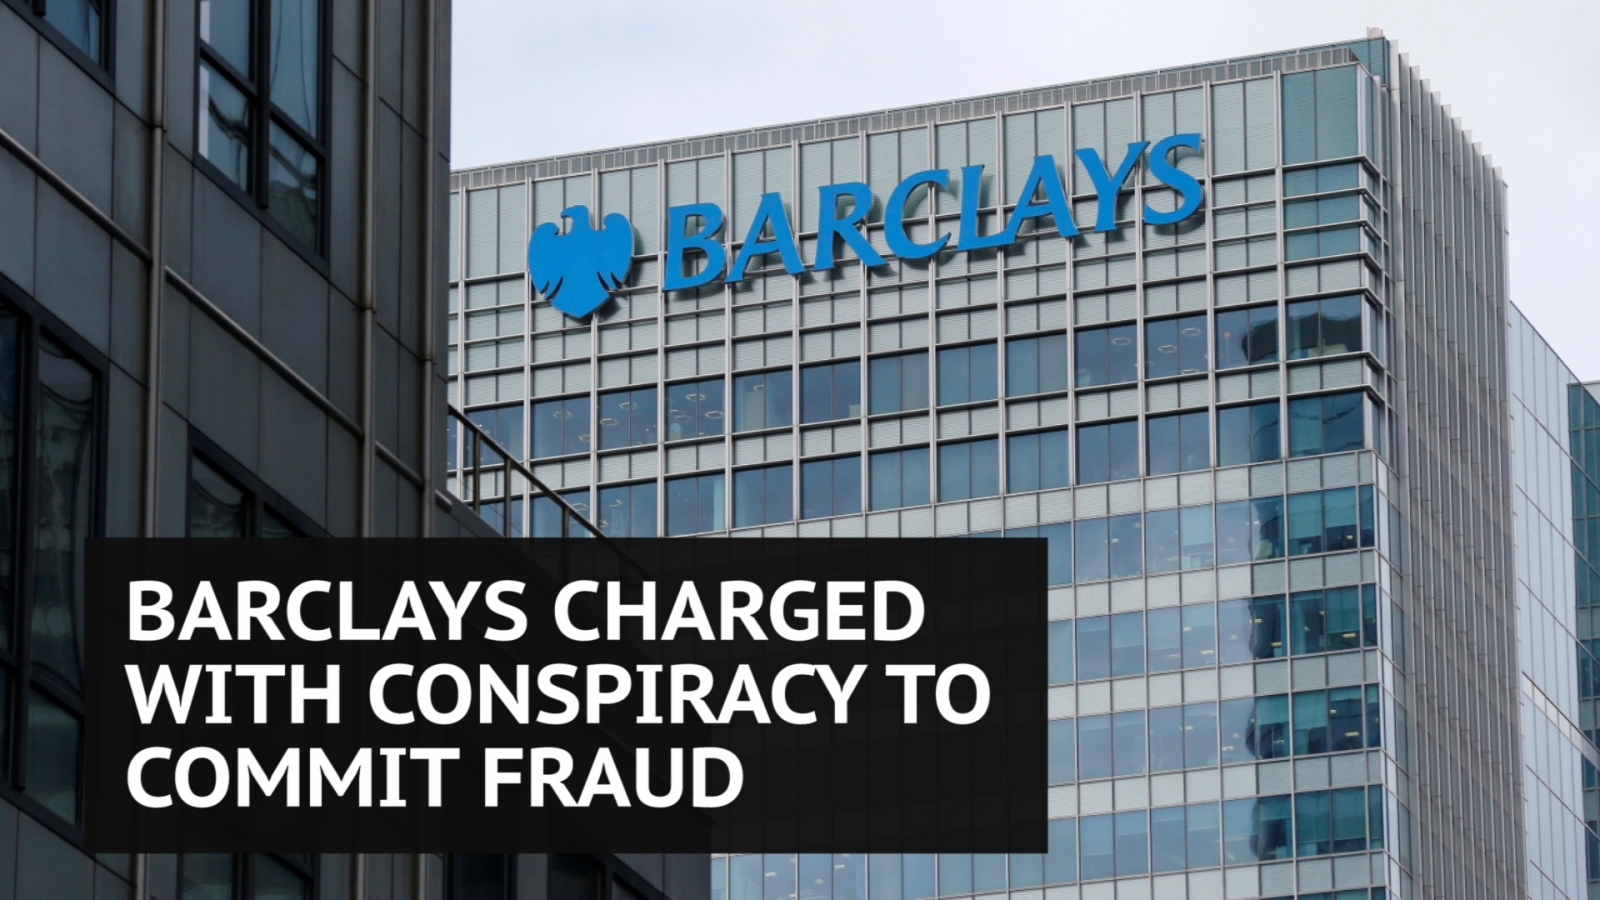 barclays-charged-with-conspiracy-to-commit-fraud-over-2008-financial-crisis-fundraising